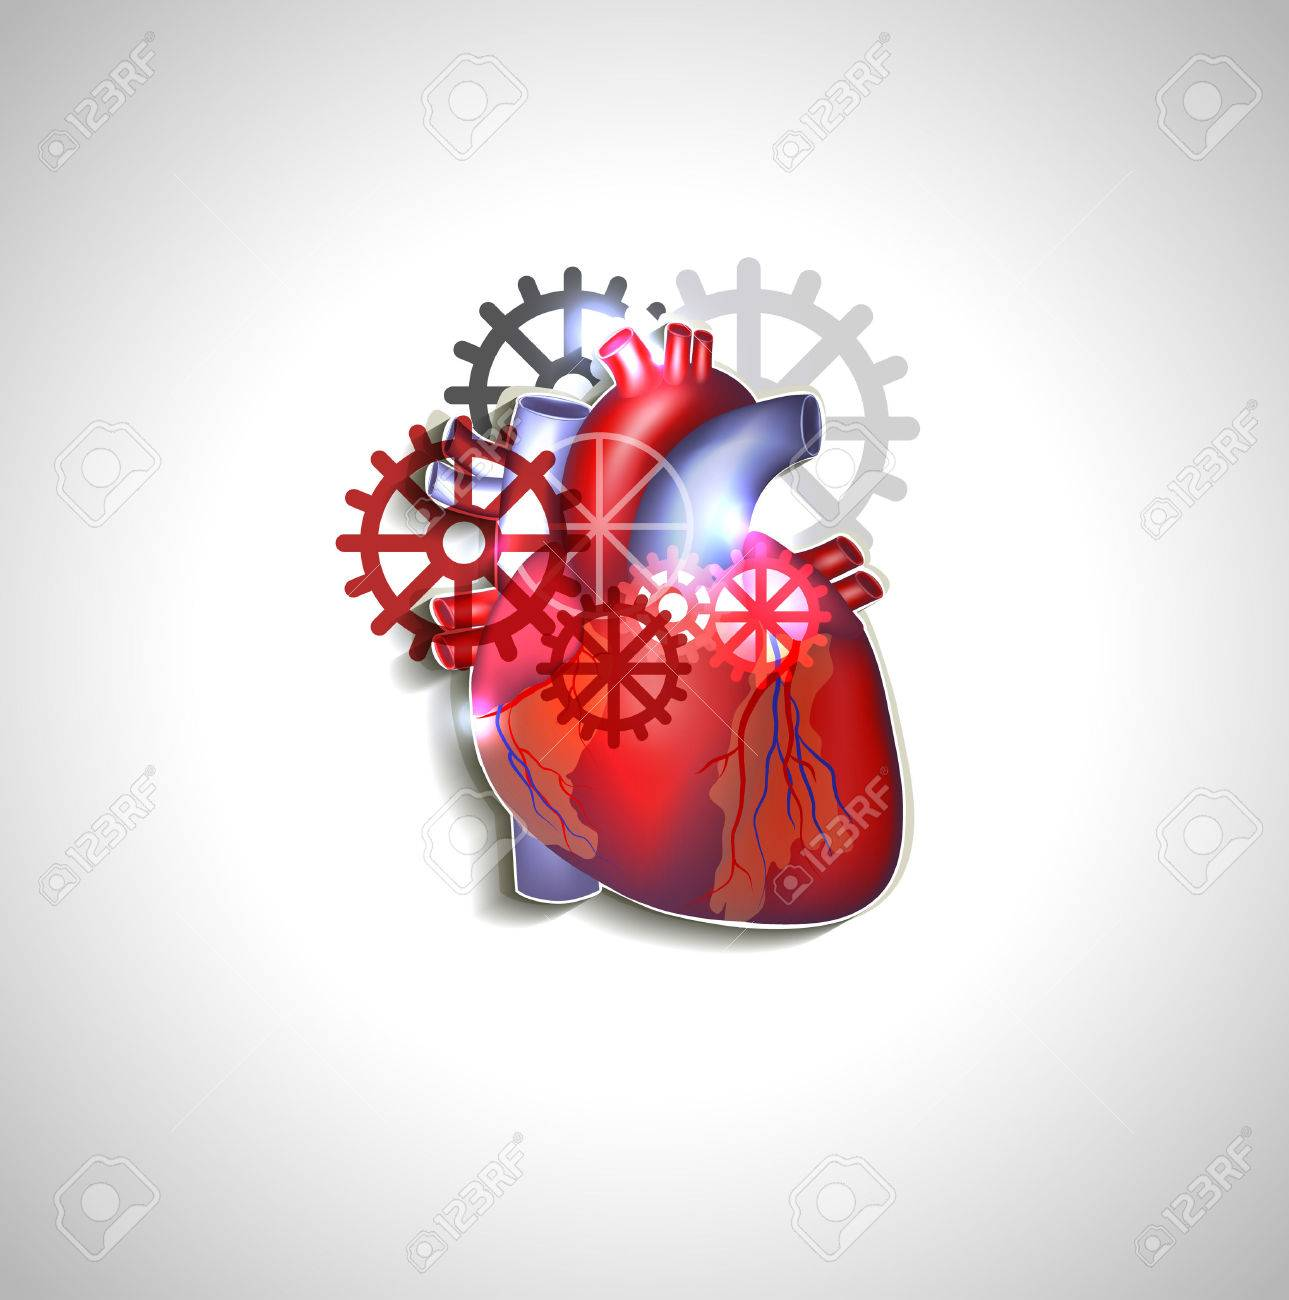 Heart With Gears, Human Heart Anatomy Royalty Free Cliparts, Vectors ...